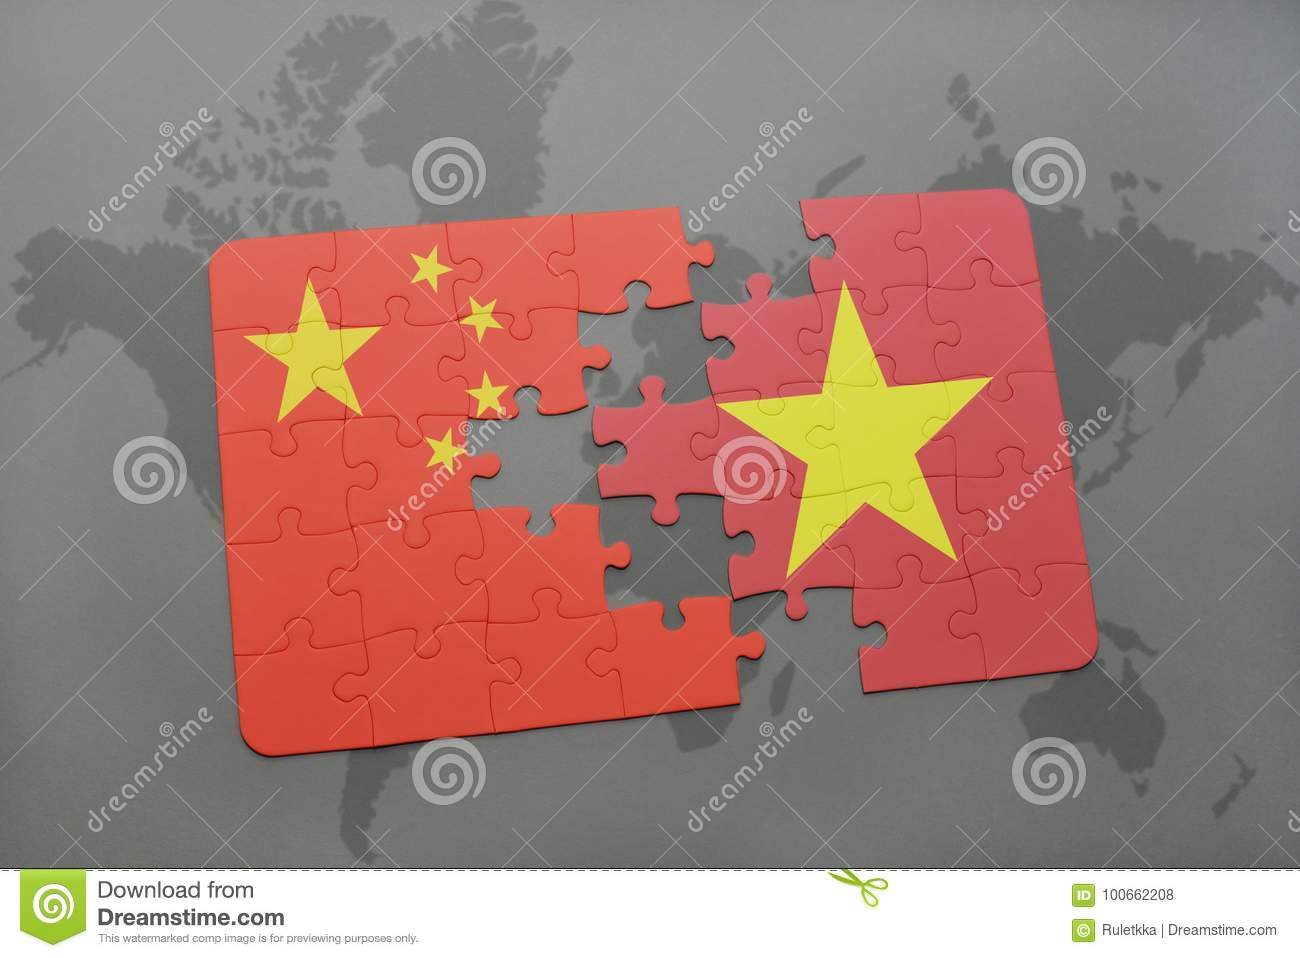 Puzzle with the national flag of china and vietnam on a world map download puzzle with the national flag of china and vietnam on a world map background gumiabroncs Images